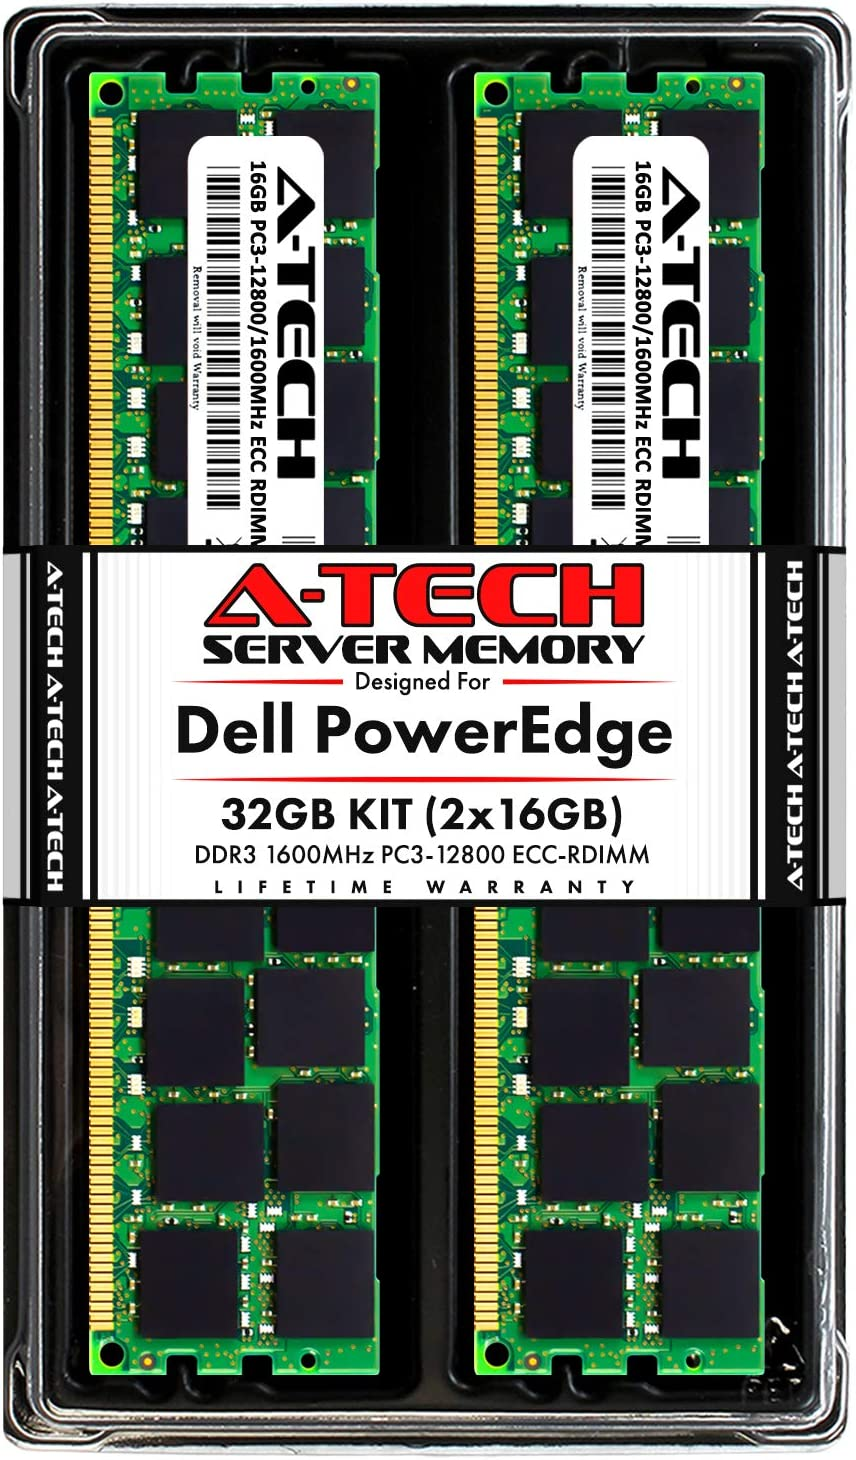 A-Tech 32GB (2x16GB) RAM for Dell PowerEdge T320, T420, T620 Tower Servers | DDR3 1600MHz ECC-RDIMM PC3-12800 2Rx4 1.5V 240-Pin ECC Registered DIMM Server Memory Upgrade Kit